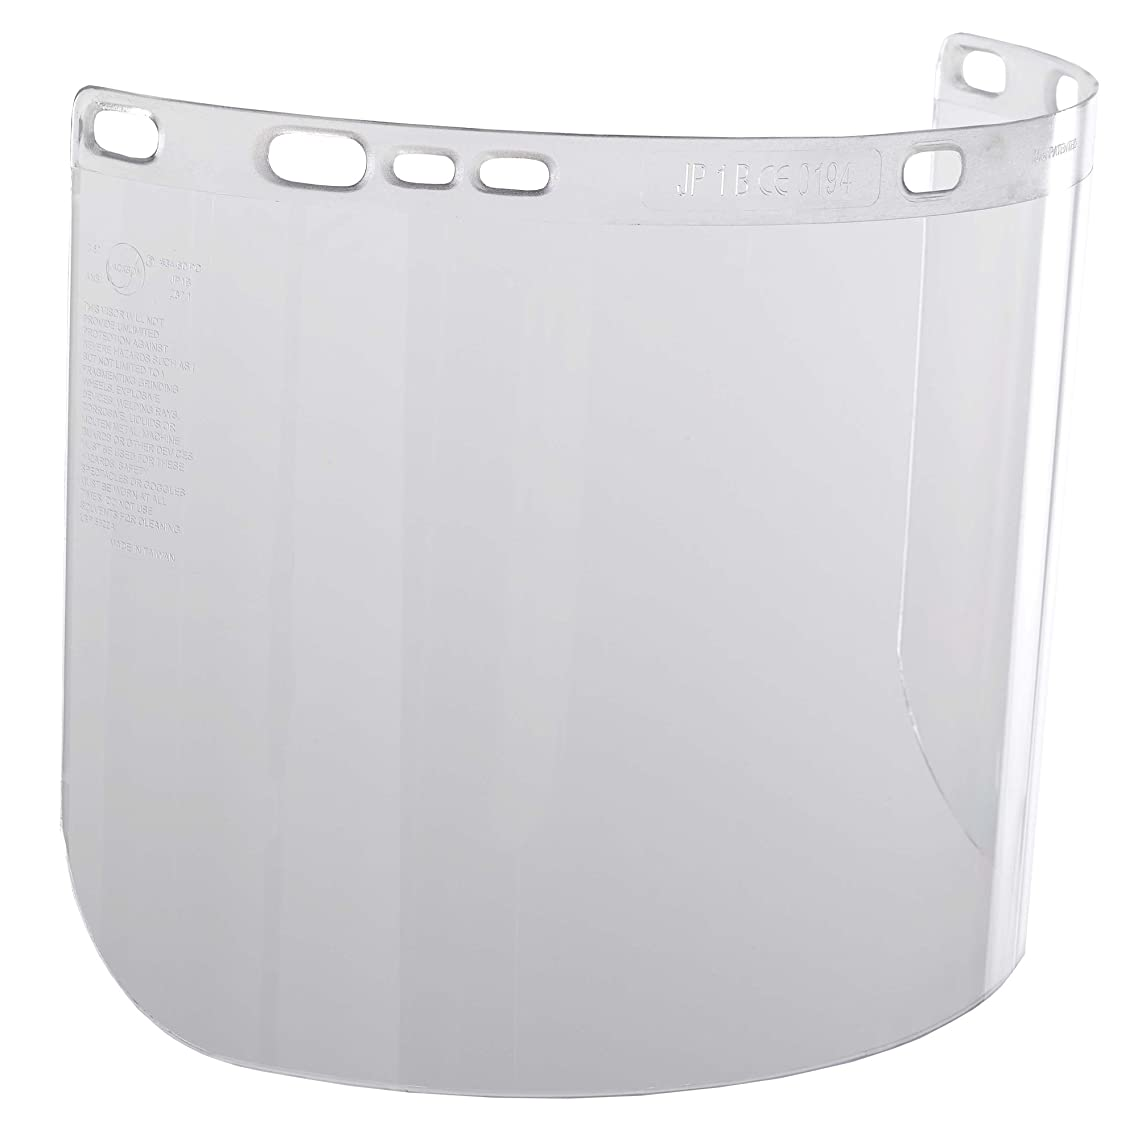 """Jackson Safety F20 High Impact Face Shield (29087), Polycarbonate, 8"""" x 15.5"""" x 0.06"""", Clear, Face Protection, Unbound, 12 Shields / Case"""